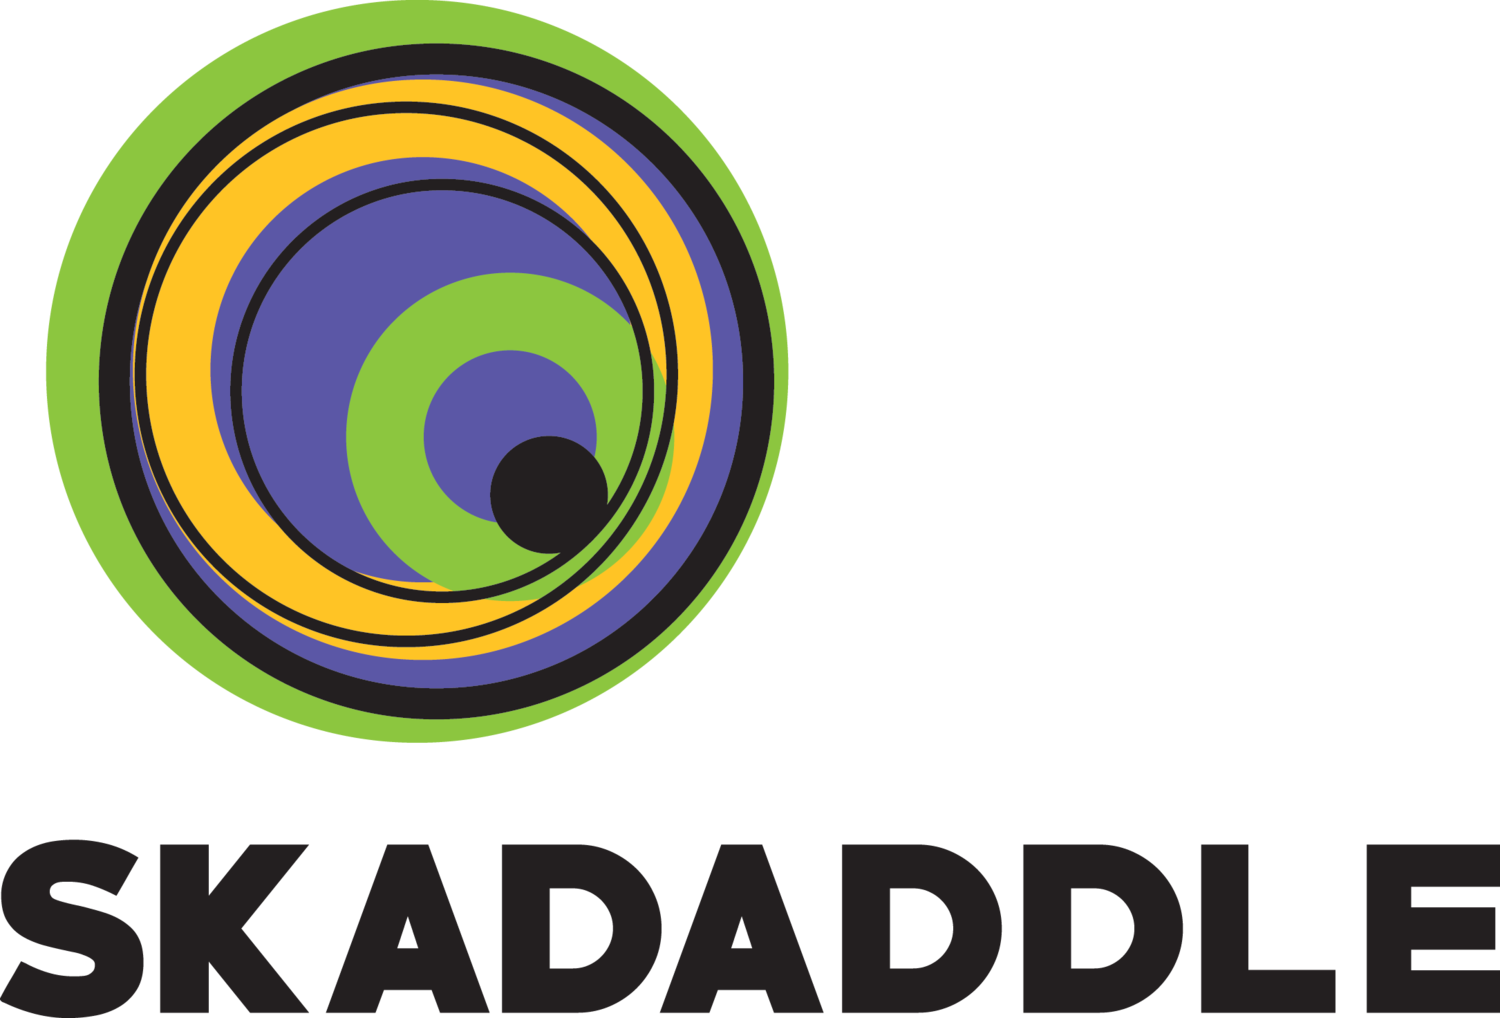 SKADADDLE